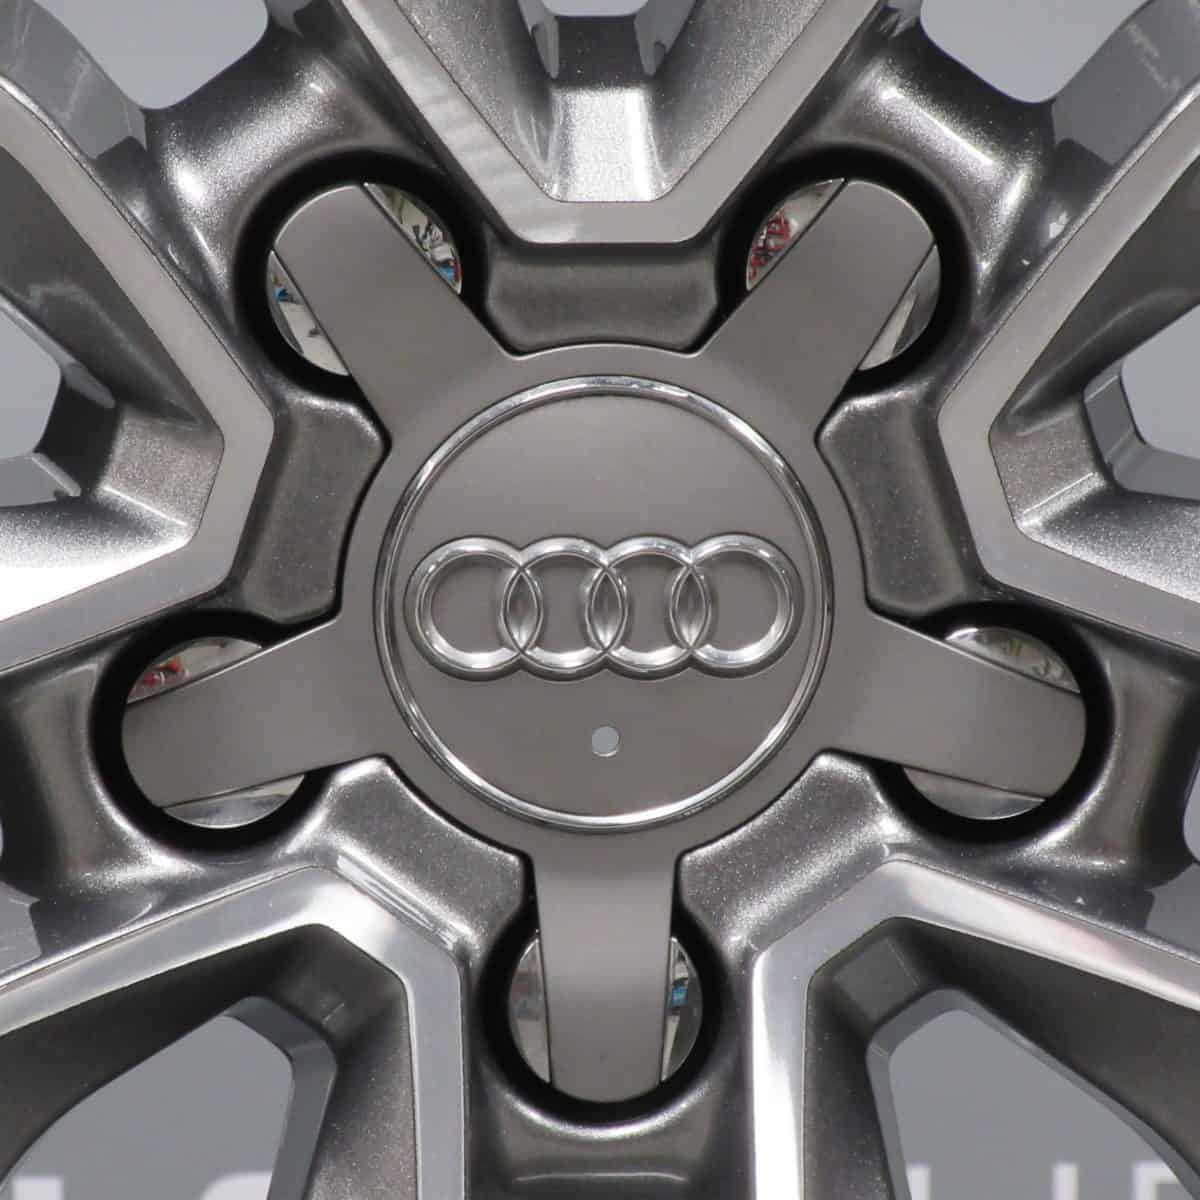 """Genuine Audi S3 RS3 A3 8P 5 Twin Spoke 18"""" Inch Alloy Wheels with Grey & Diamond Turned Finish 8V0 601 025 M"""